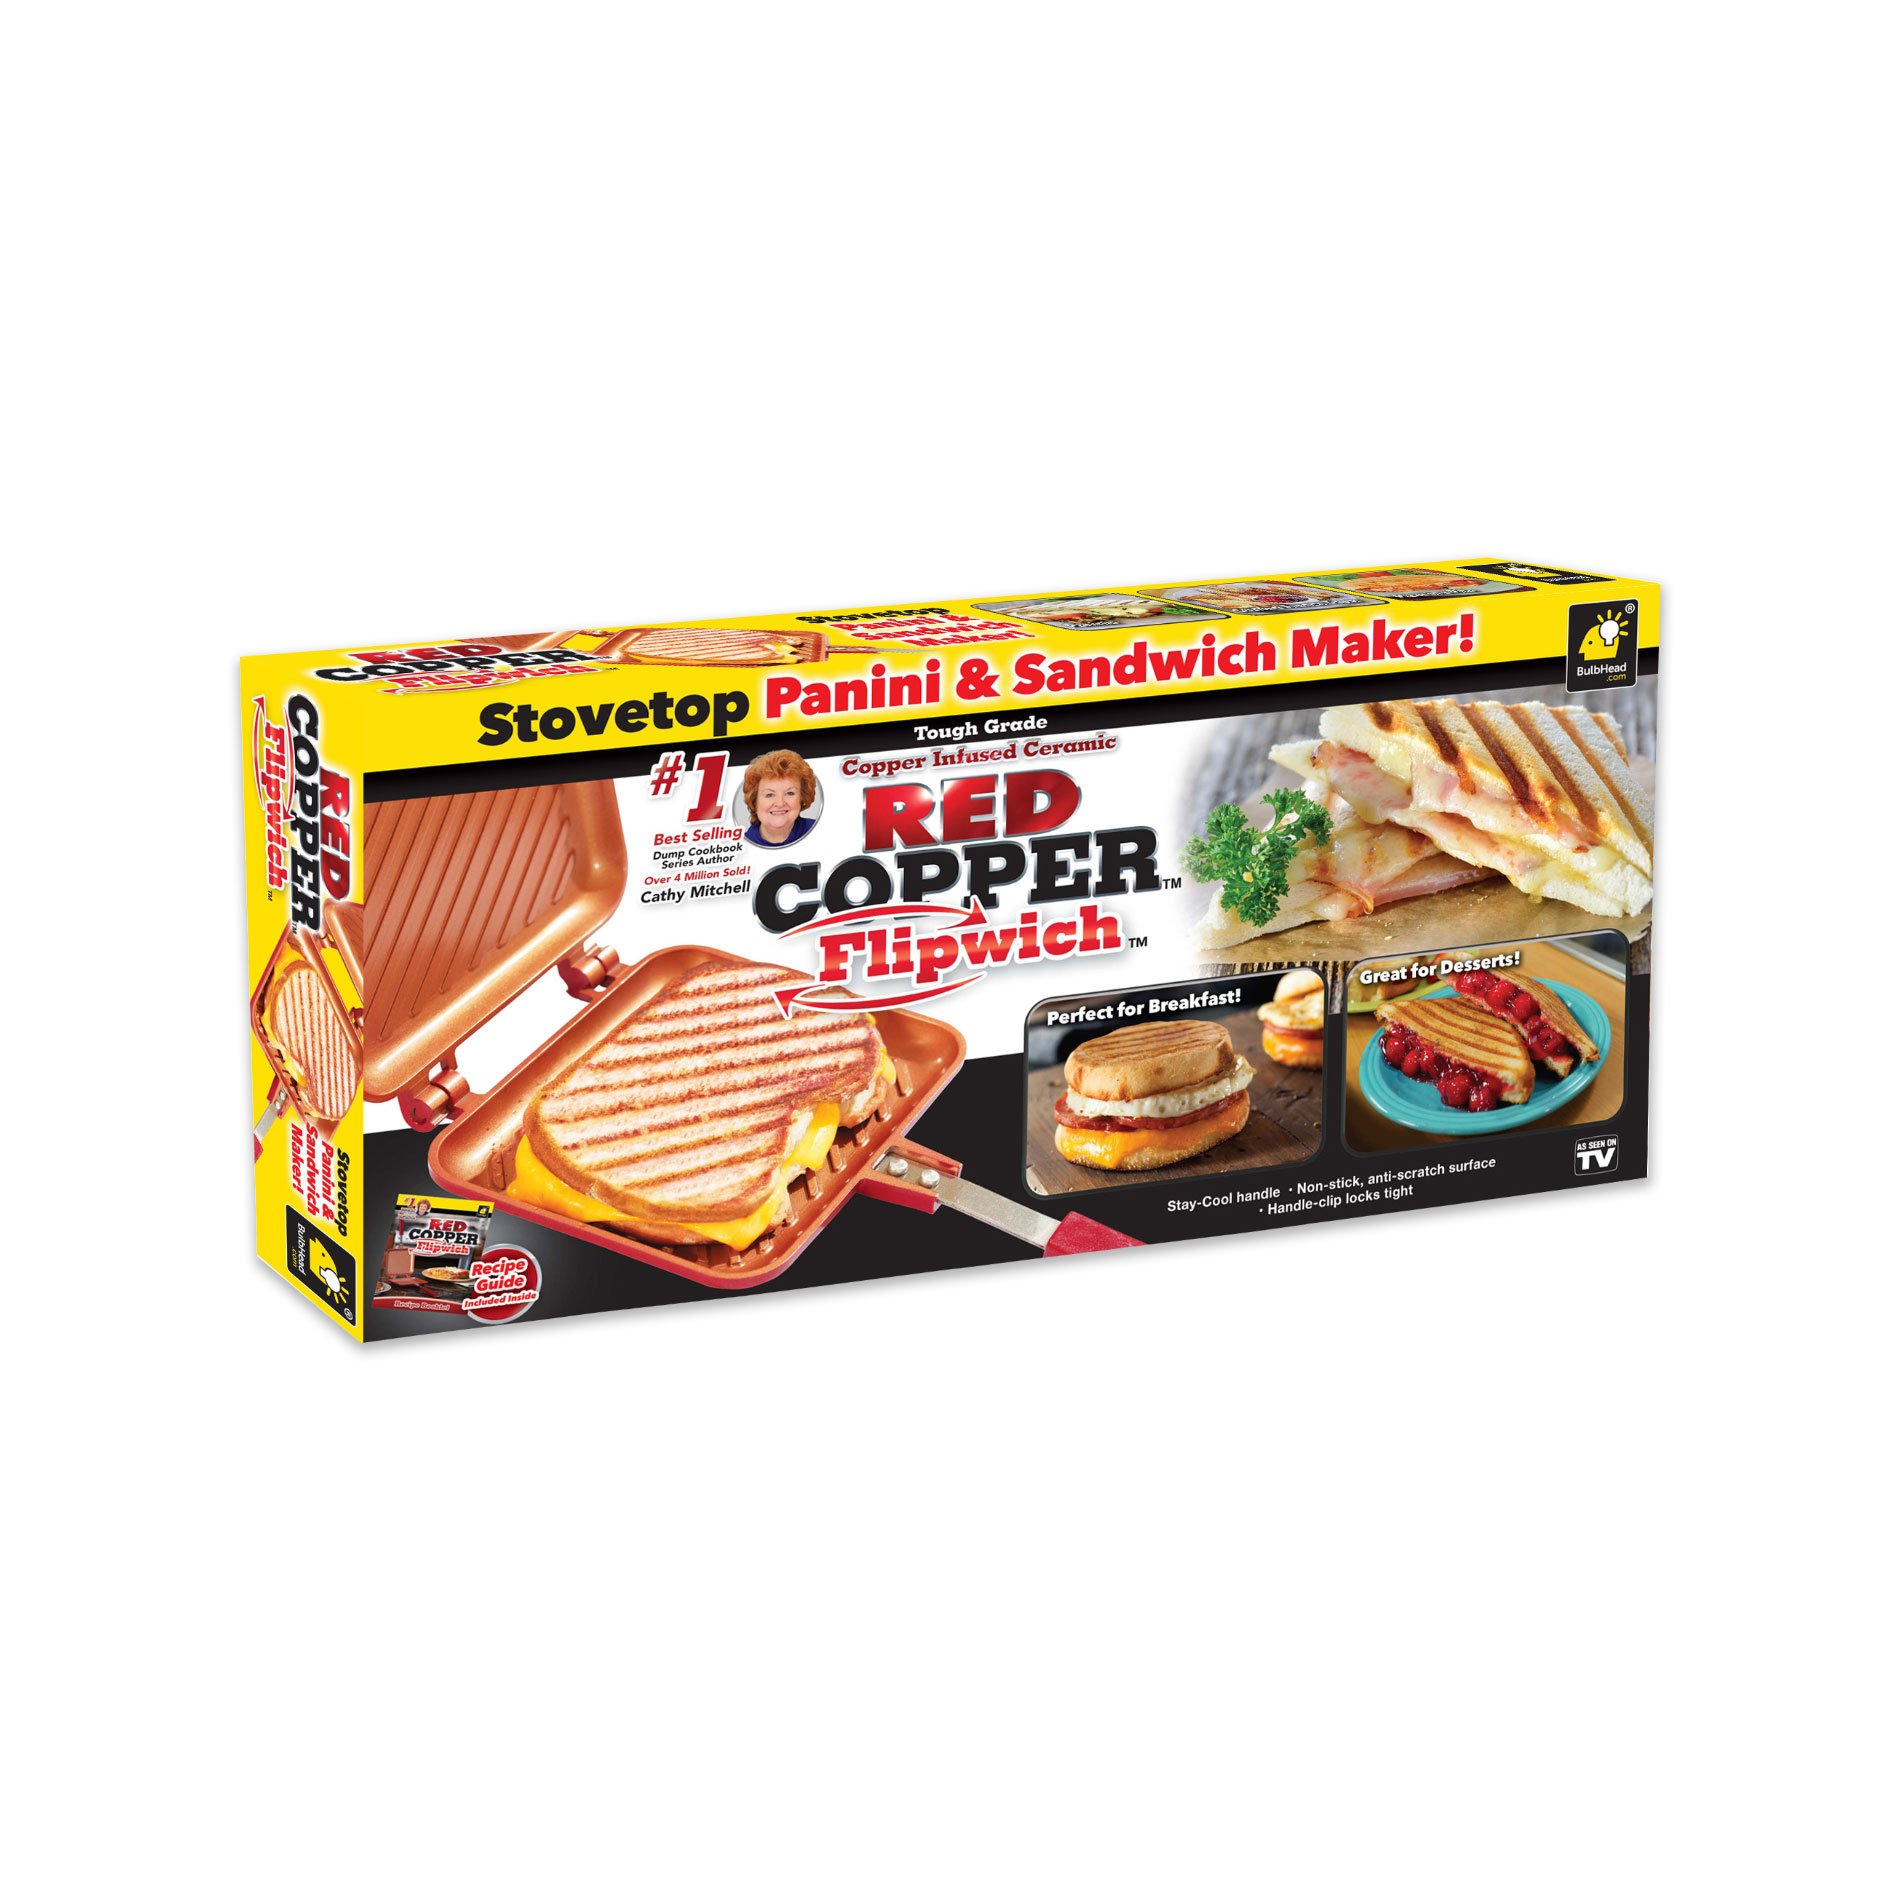 Red Copper Flipwich Non-Stick Grilled Sandwich and Panini Maker by BulbHead (1 Pack) by BulbHead (Image #2)